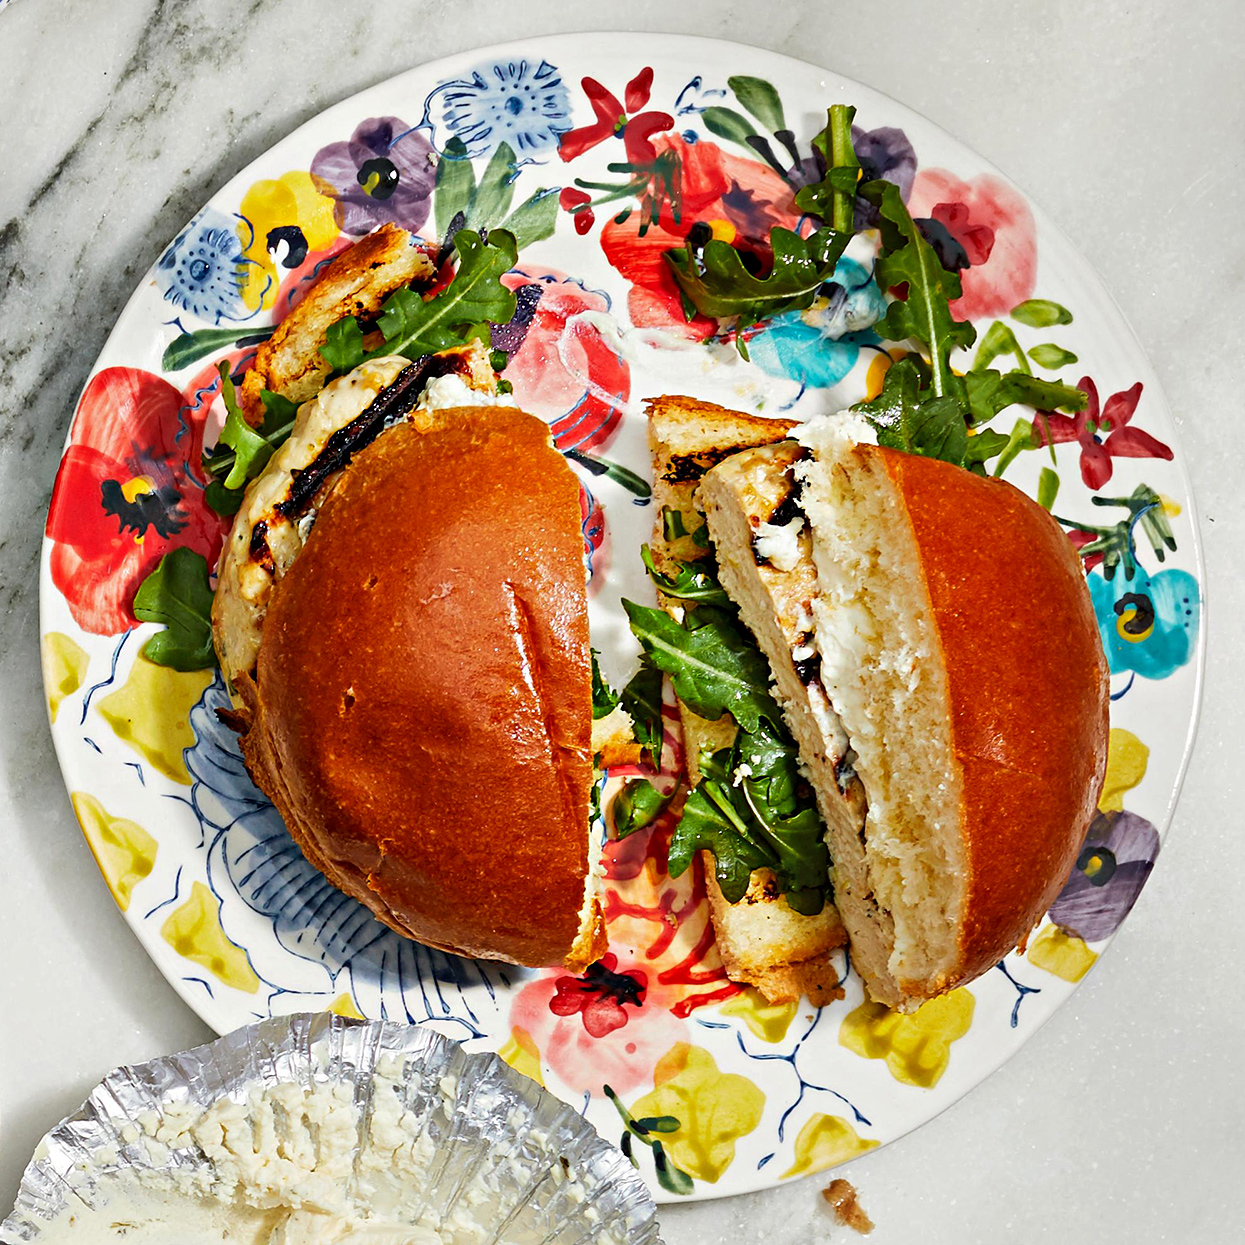 Lemon-Thyme Chicken Burgers